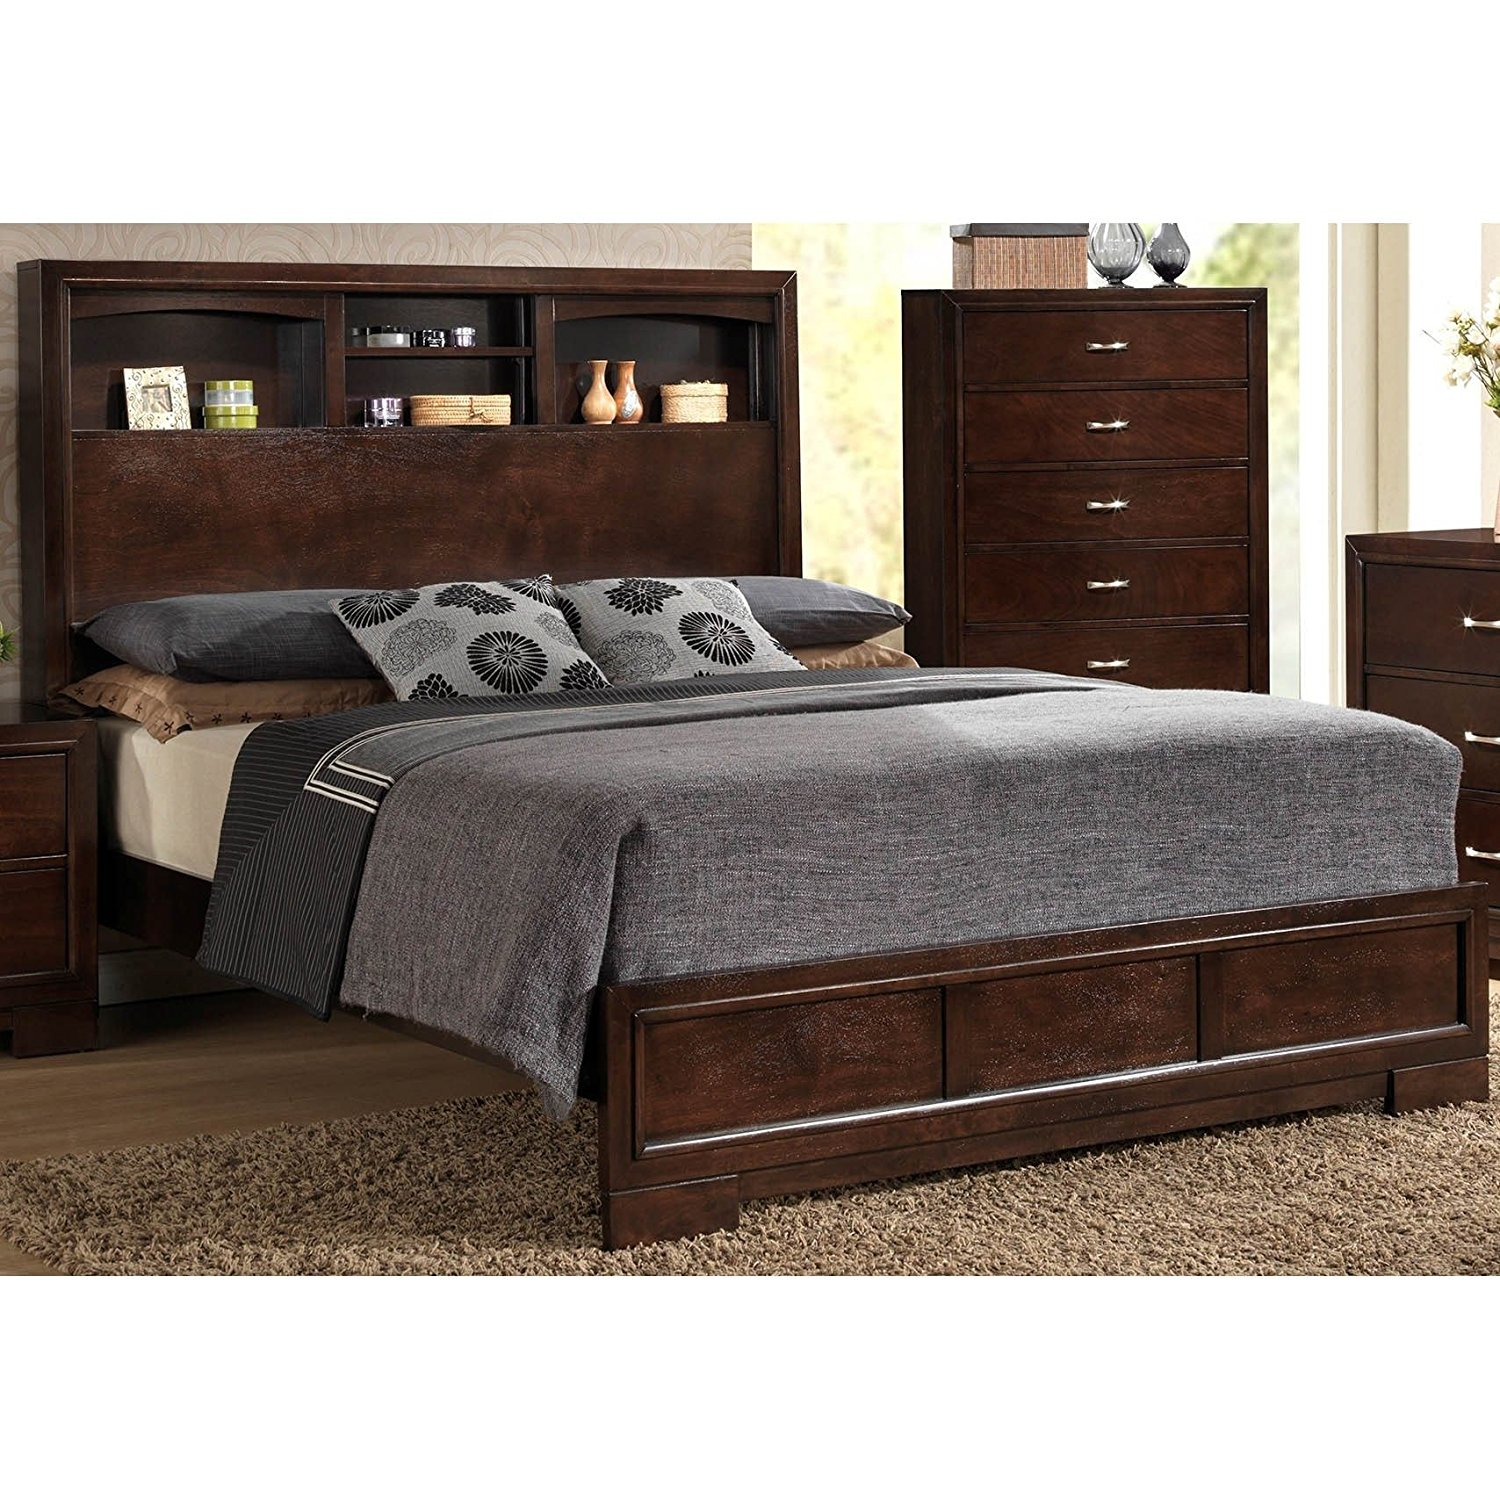 All In One Unit Only 1 Minute Set Up Also Available In Twin Xl Full Queen King Cal King Box Spring Boschettu Struttura Base Replaces Foundation And Bedframe Twin Bedroom Furniture Furniture Kalingauniversity Ac In